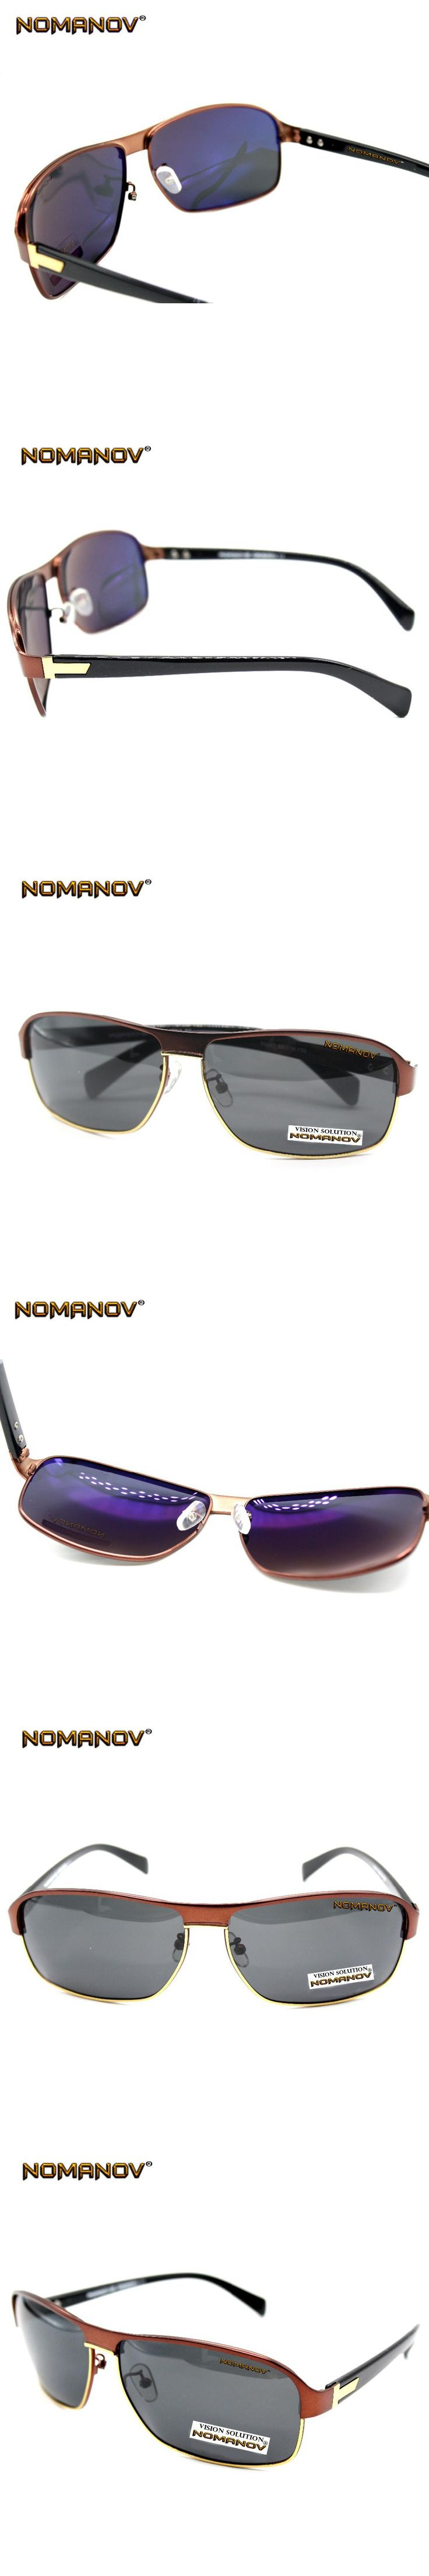 = NOMANOV BRAND = Brown Brandnew Back Coated Tac Harden Lens Polarized Sheild Sunglasses Sunshades Polaroid With Testing Card